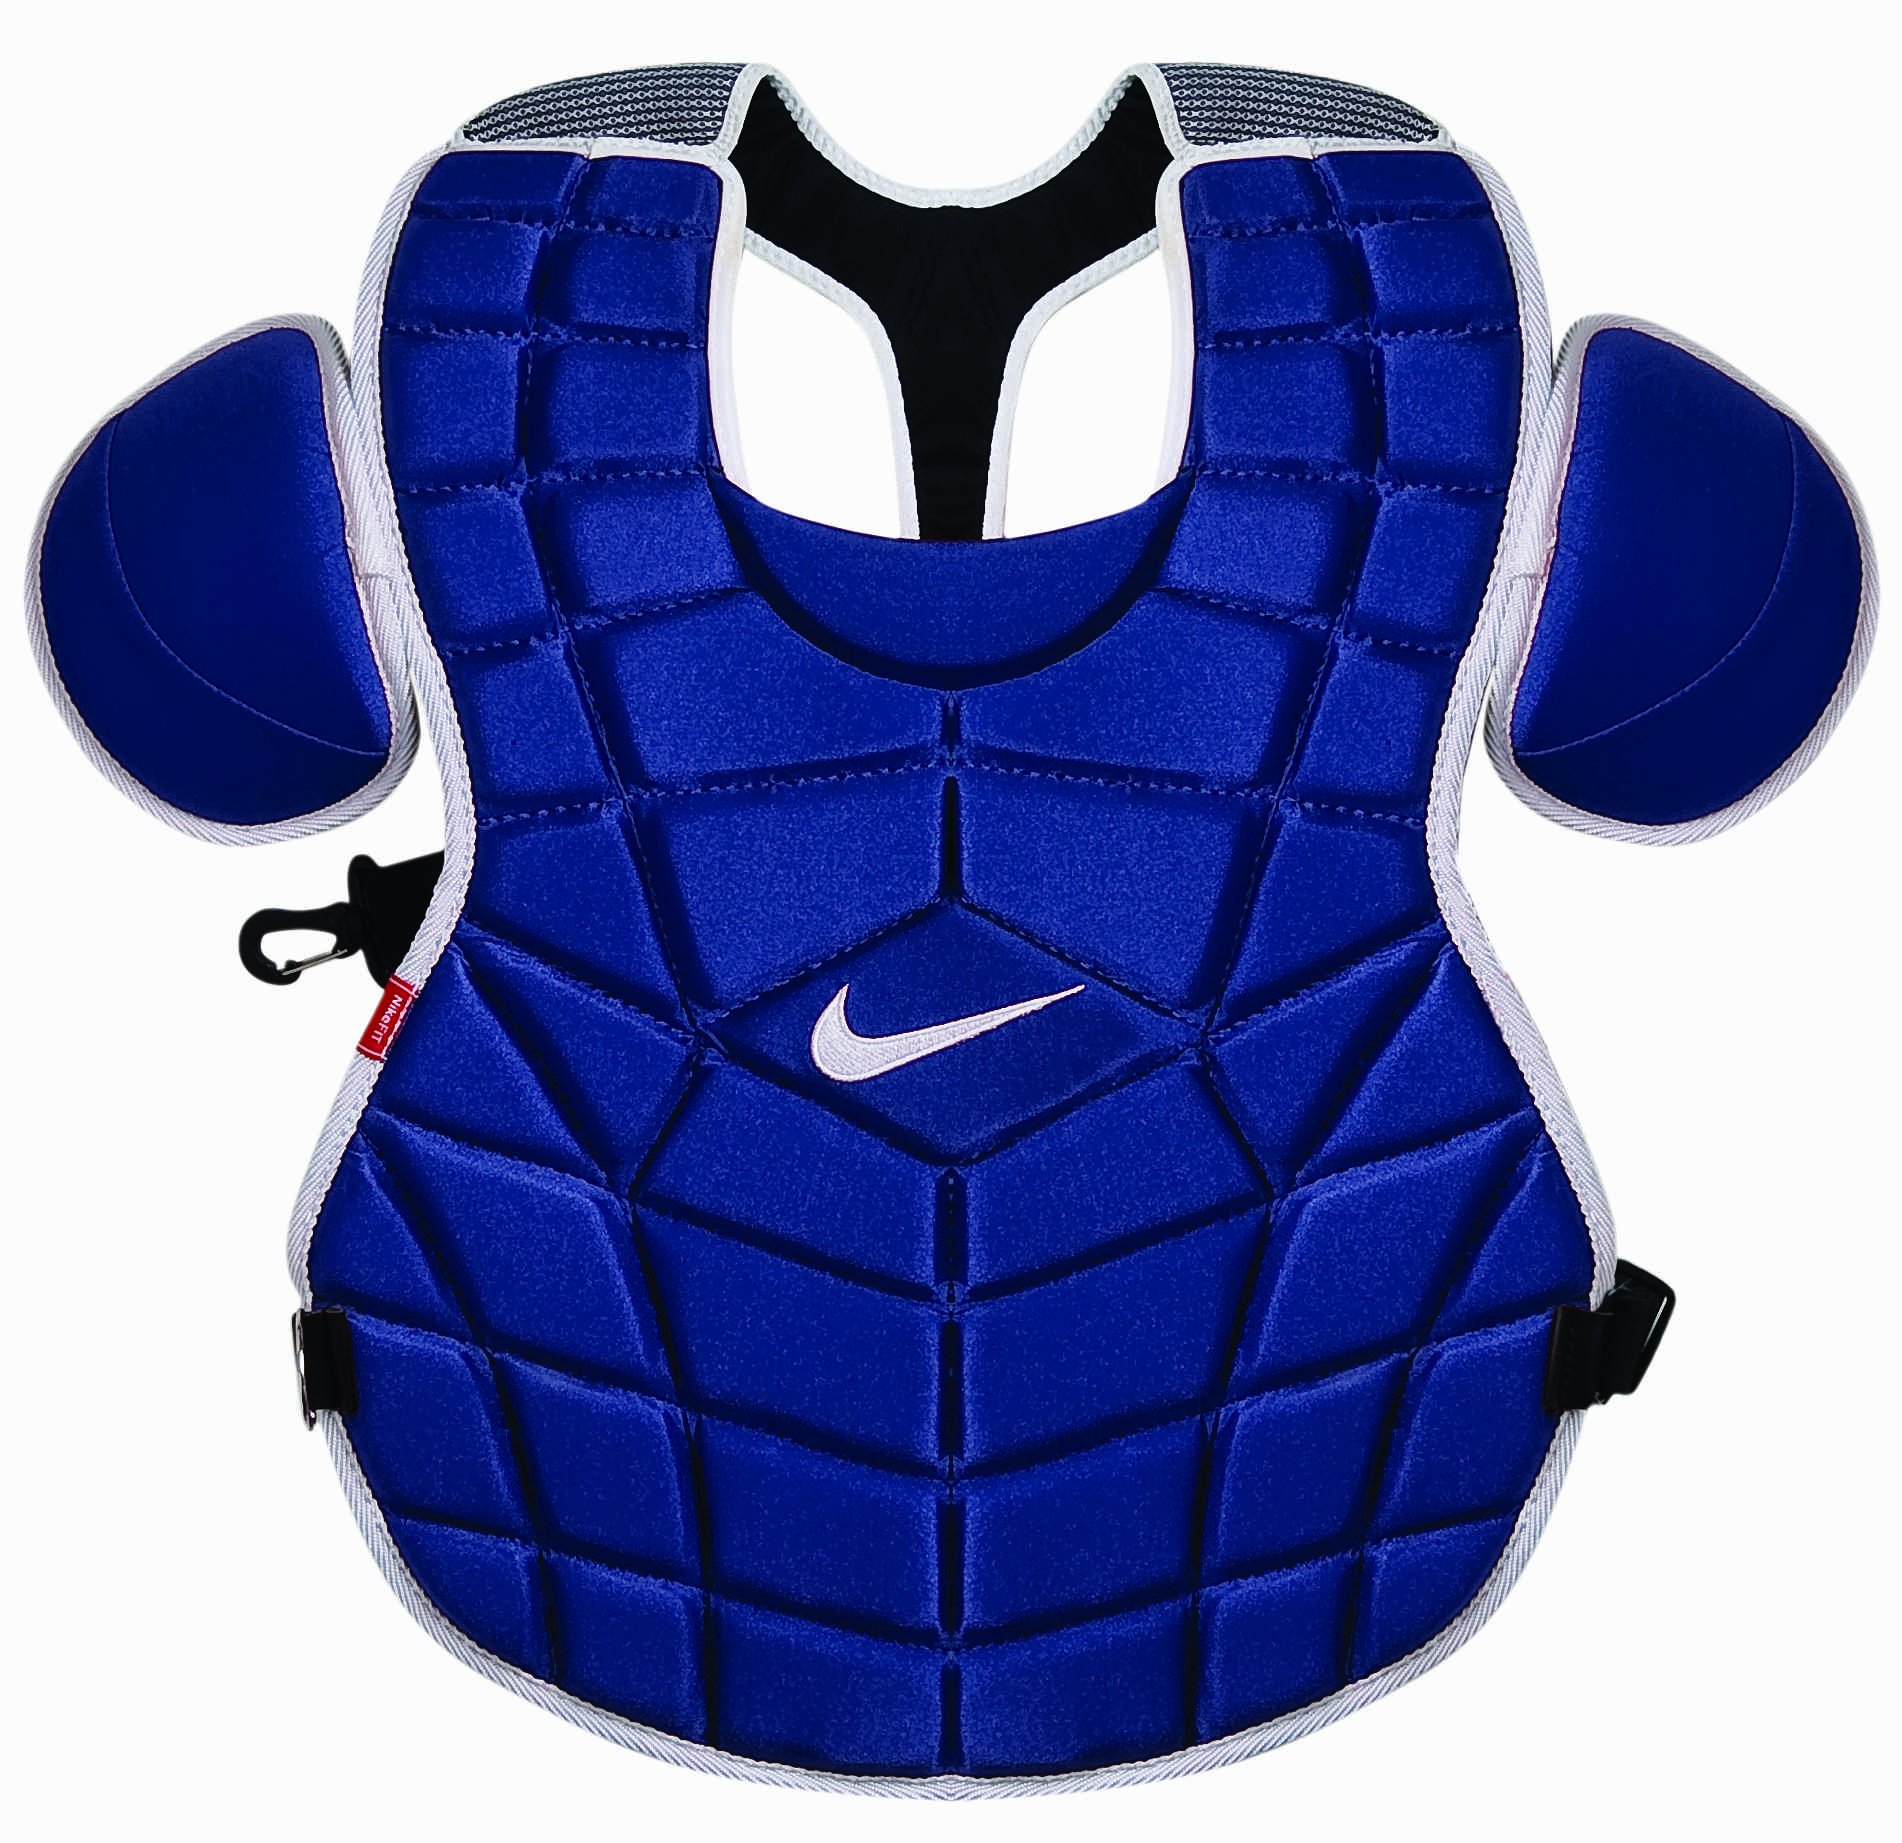 Nike De3539 Chest Protector (Navy, 15-Inch) by Nike